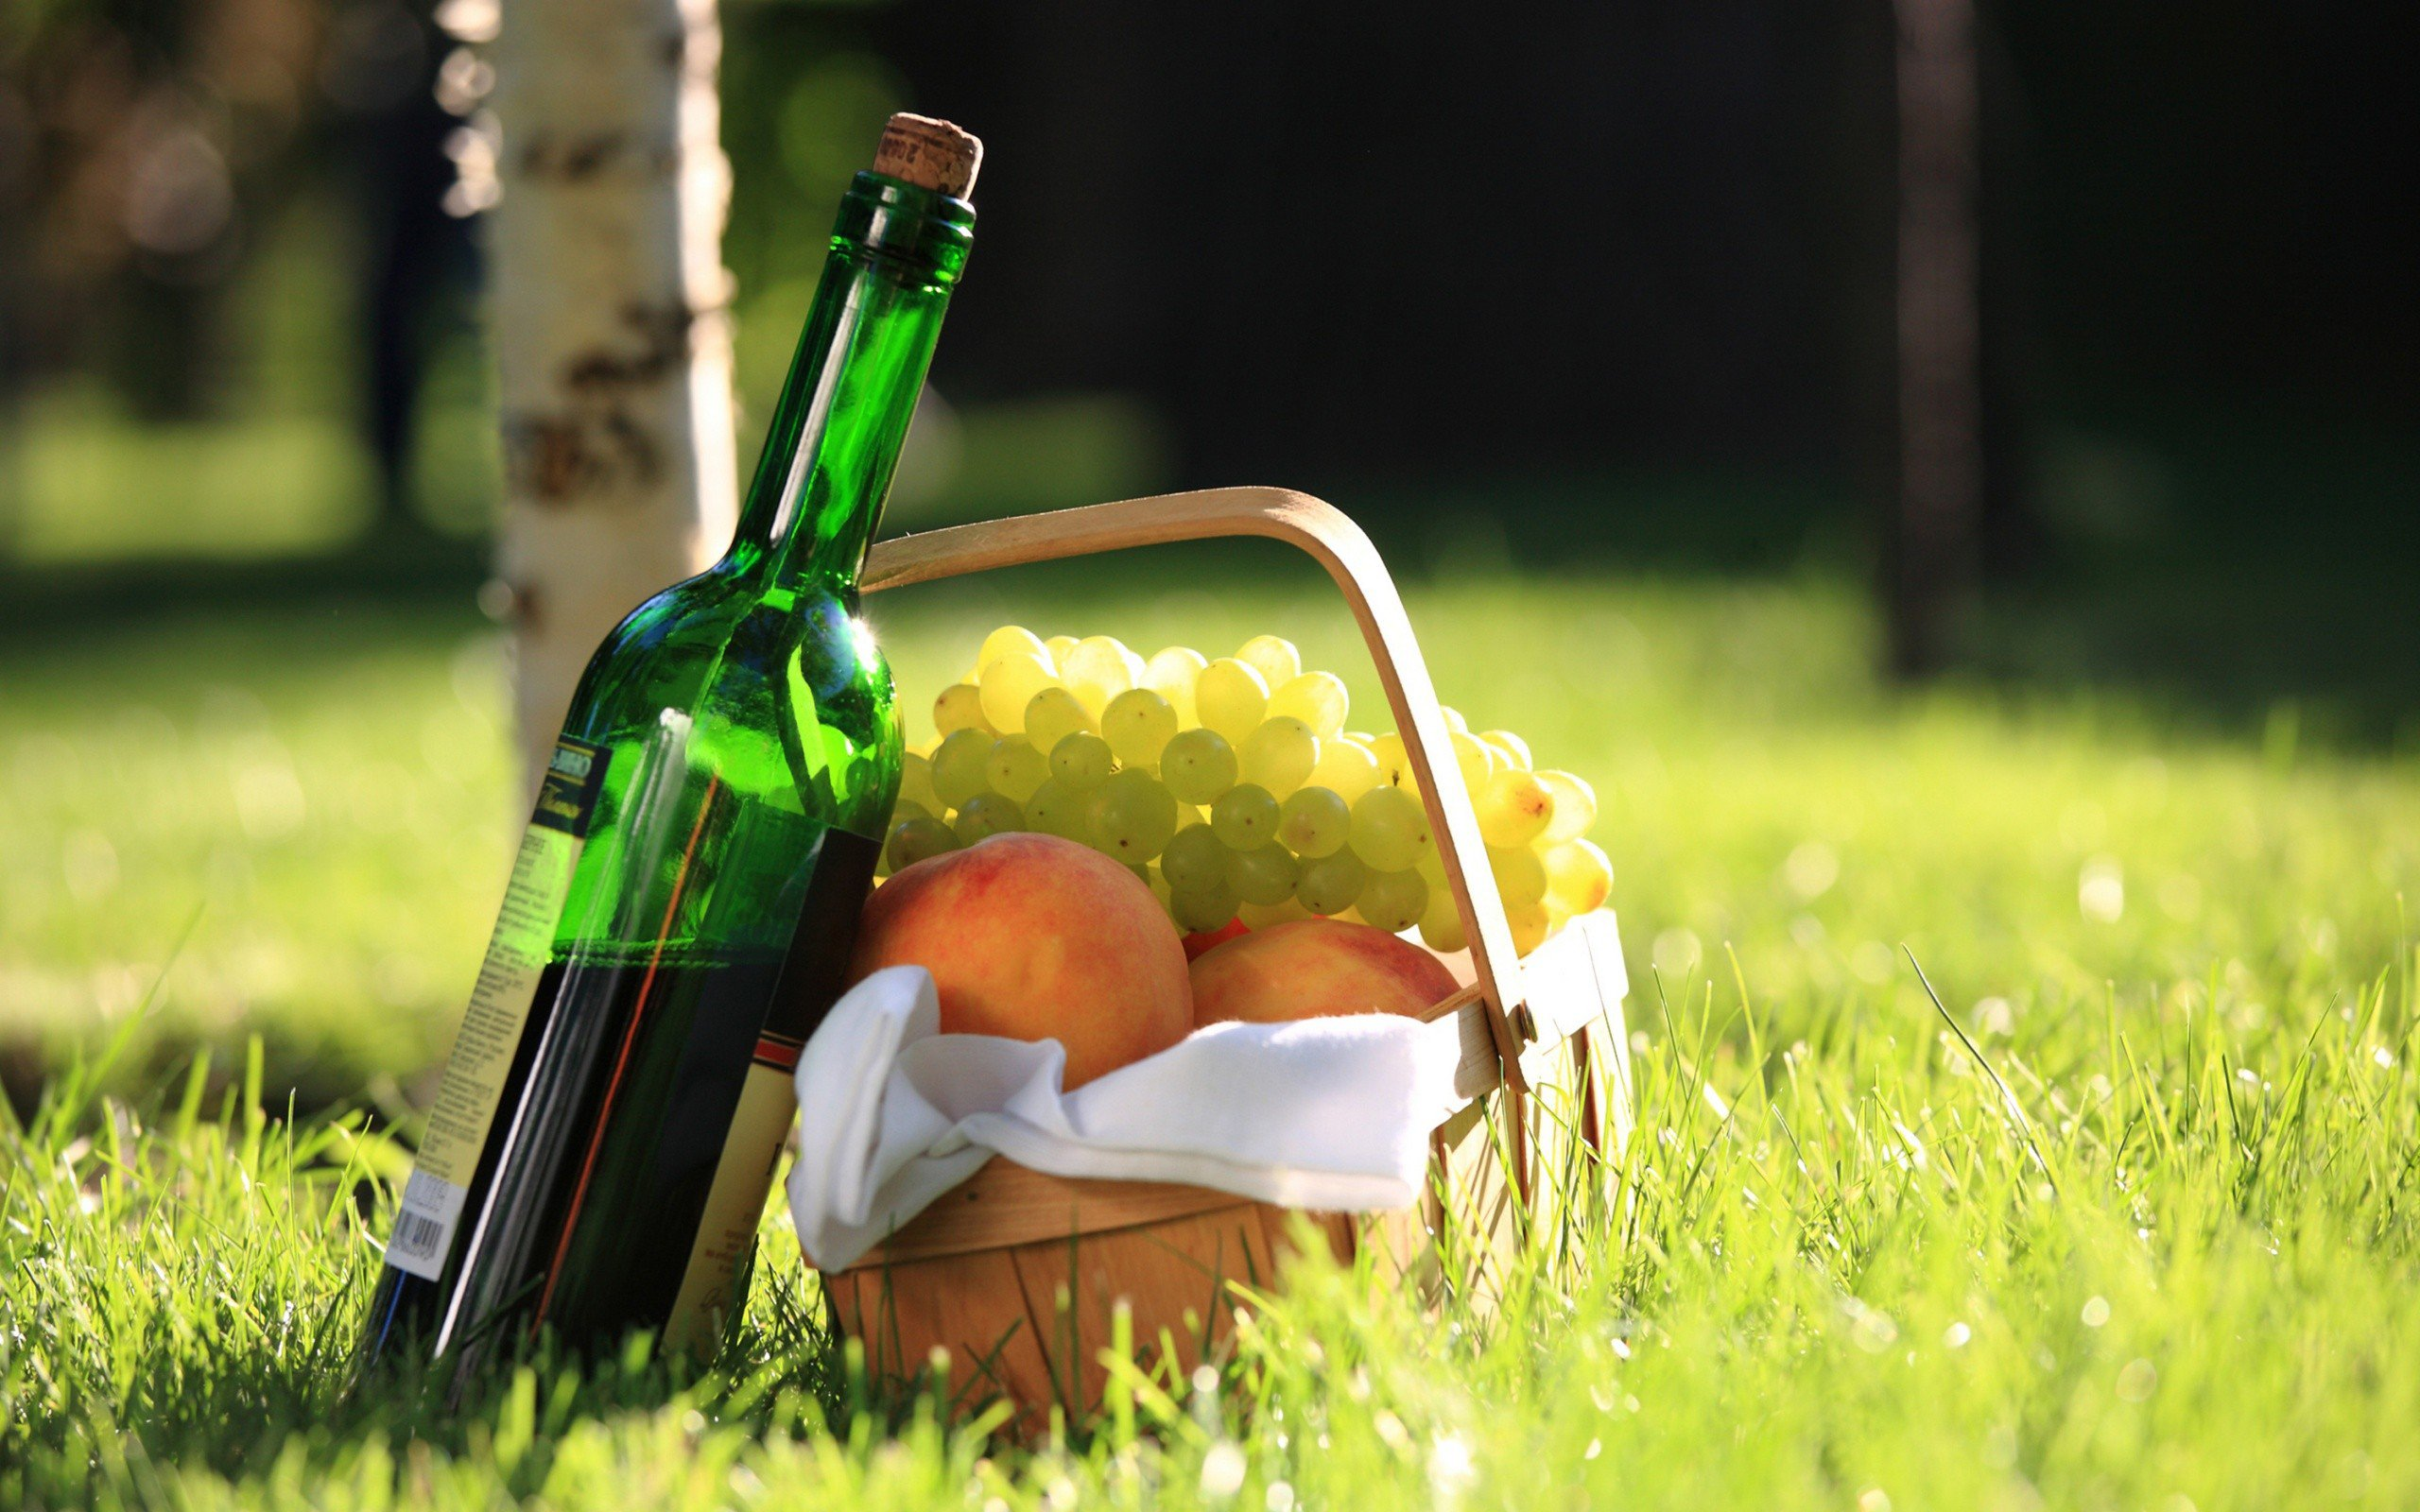 Fruit-Apples-Baskets-Bottles-Food-Fruits-Grass-Nature-Picnic-Wine-nature-photography-wallpaper-wp5405132